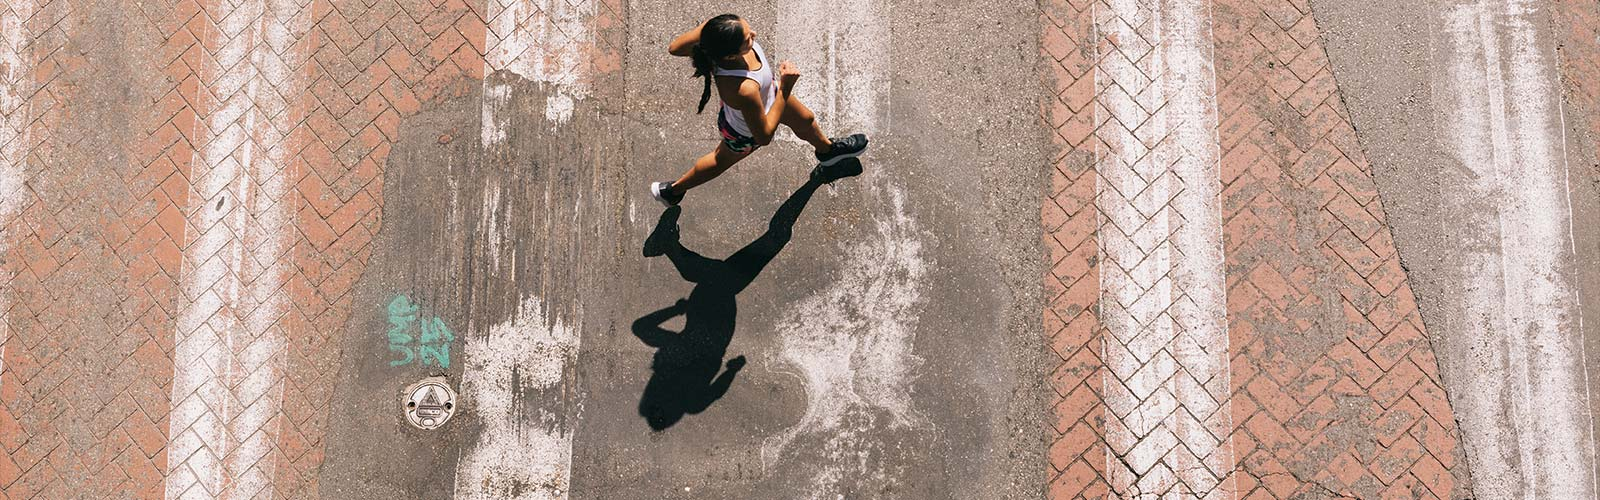 Top down view of a woman running on a brick and concrete road with white vertical lines.